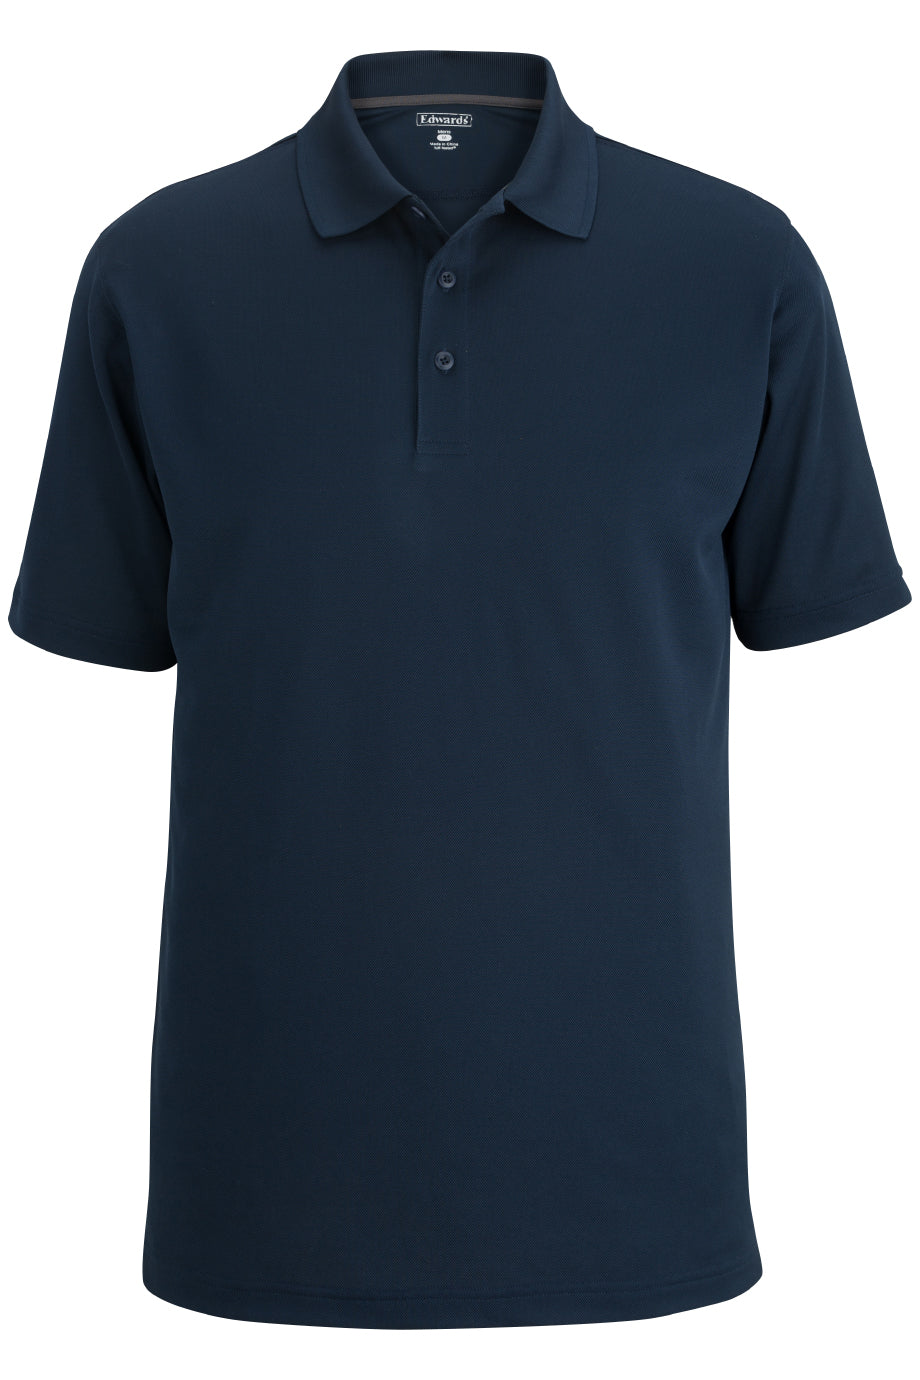 Bright Navy Edwards Mens Airgrid Polo